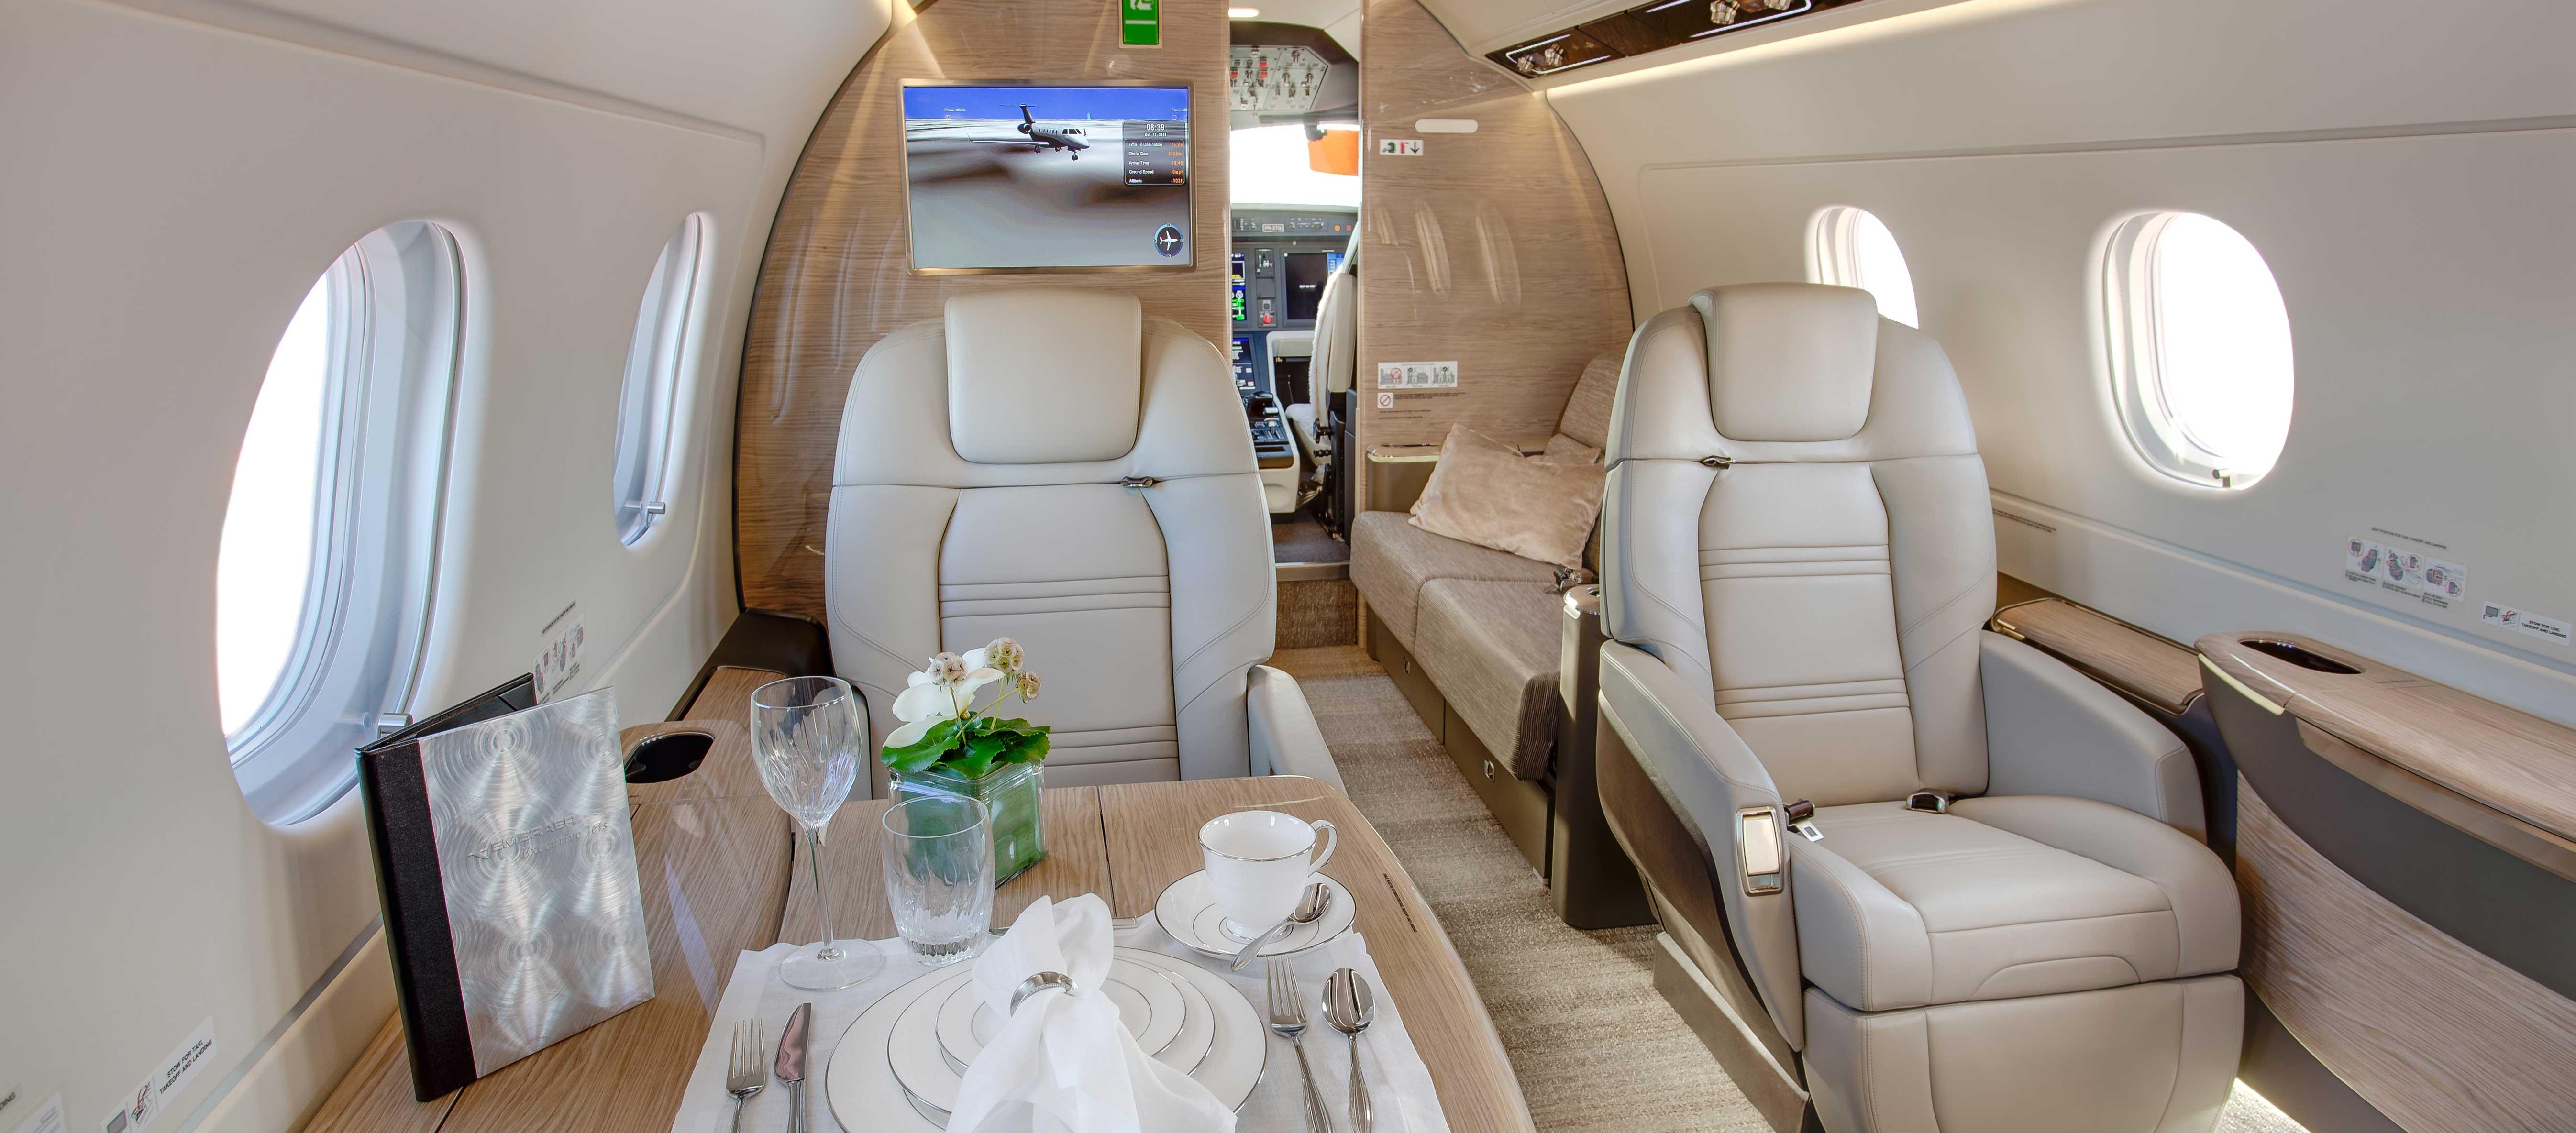 Embraer's Praetor cabins employ recycled materials.